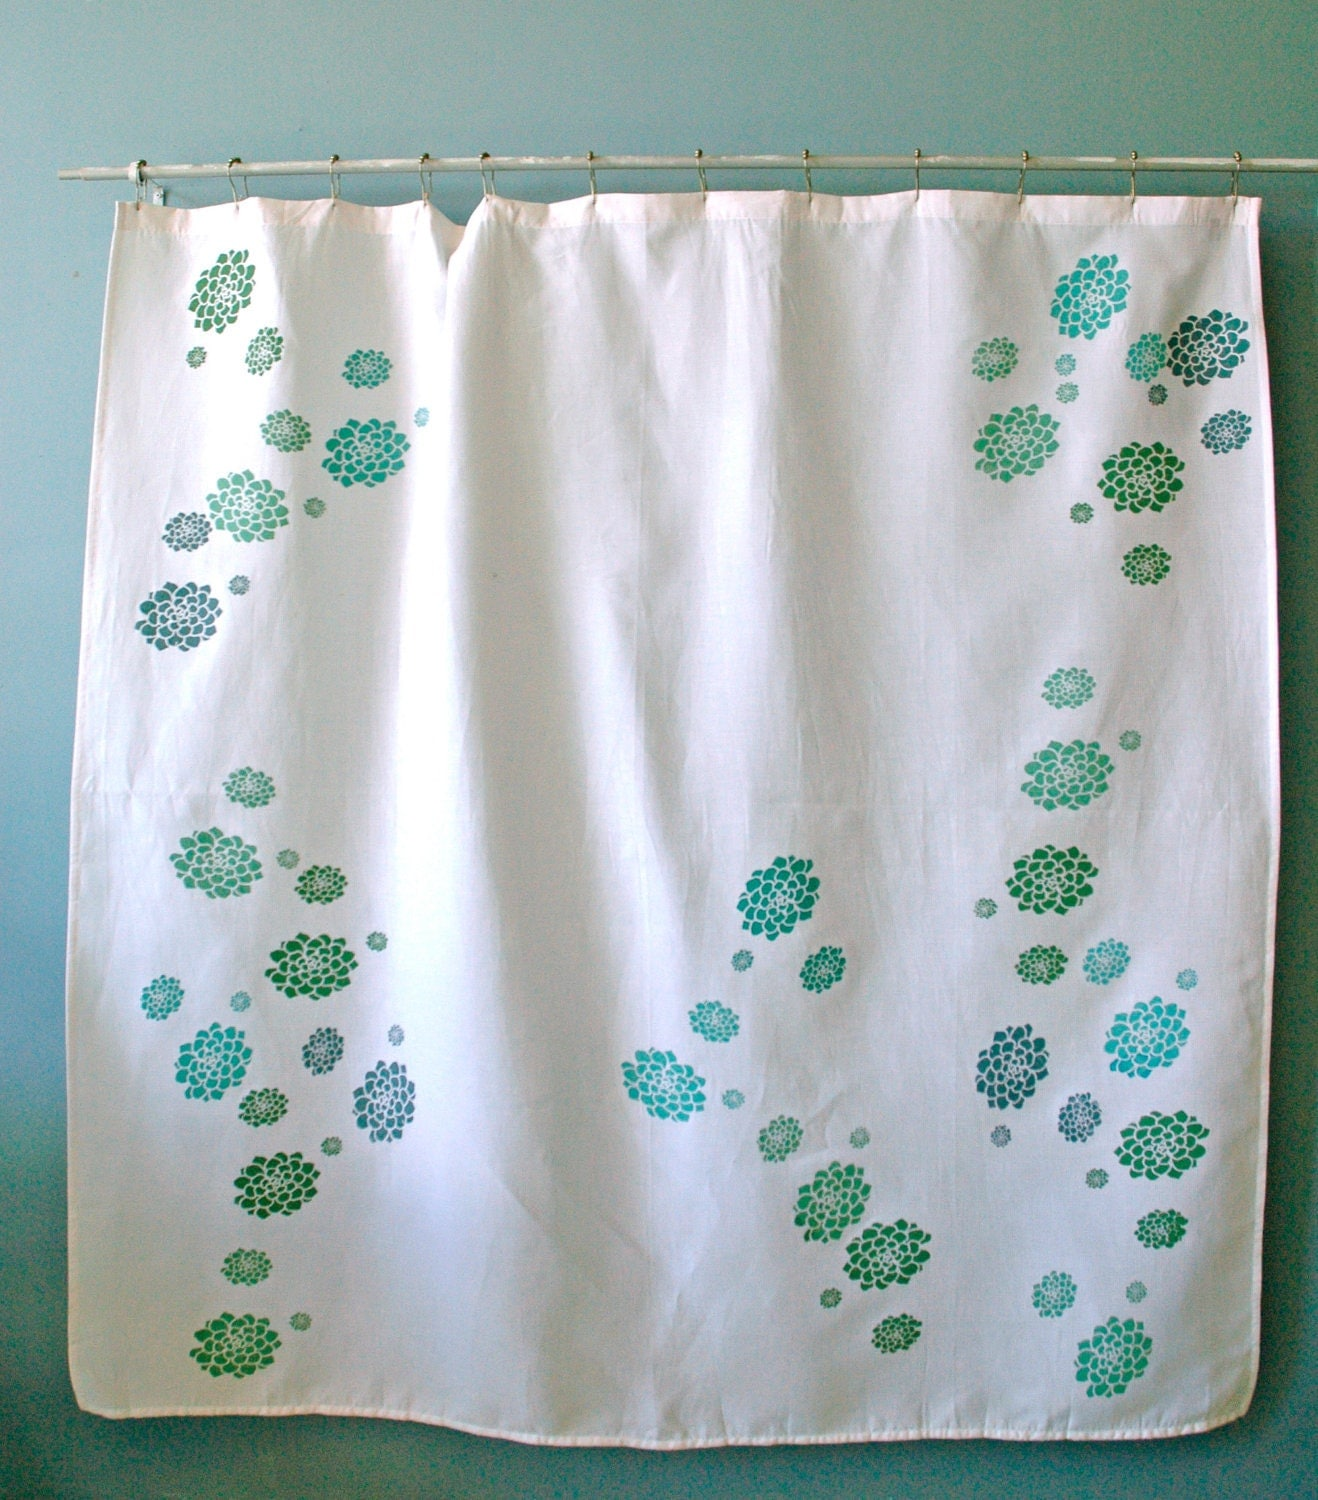 White Shower Curtain With Green And Teal Hens By